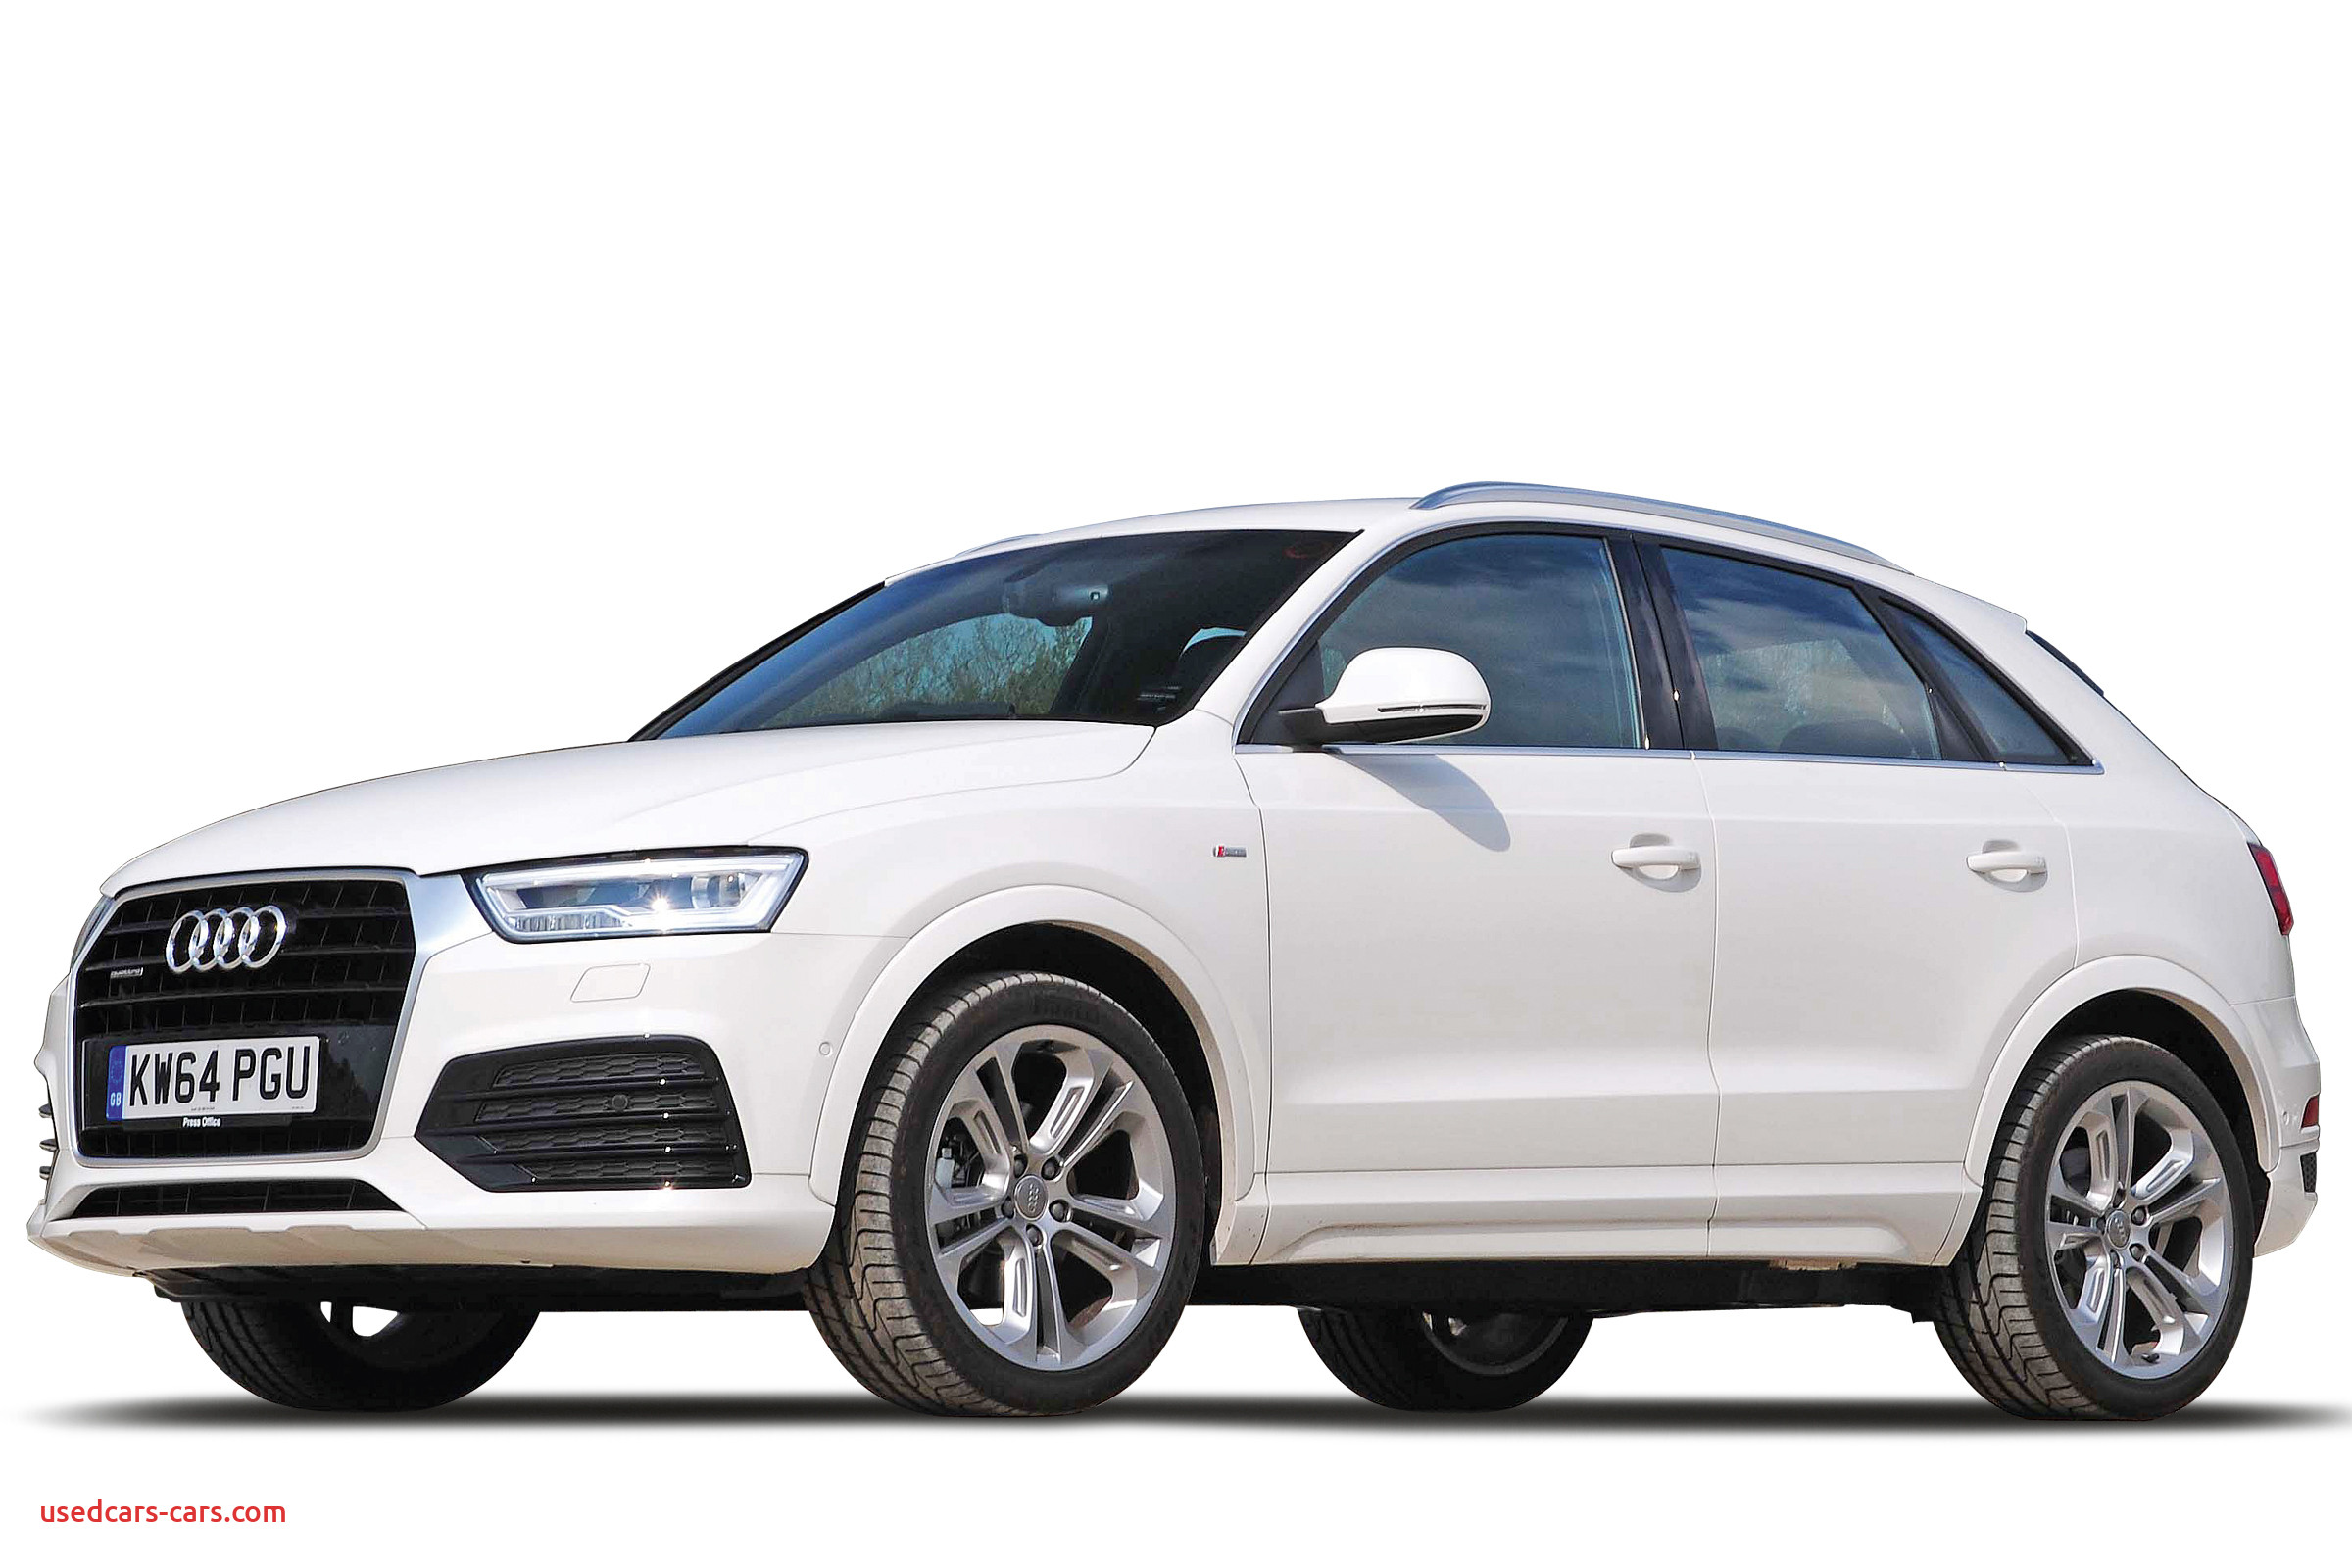 Top Rated Suv 2015 Elegant Audi Q3 Suv 2011 2018 Owner Reviews Mpg Problems